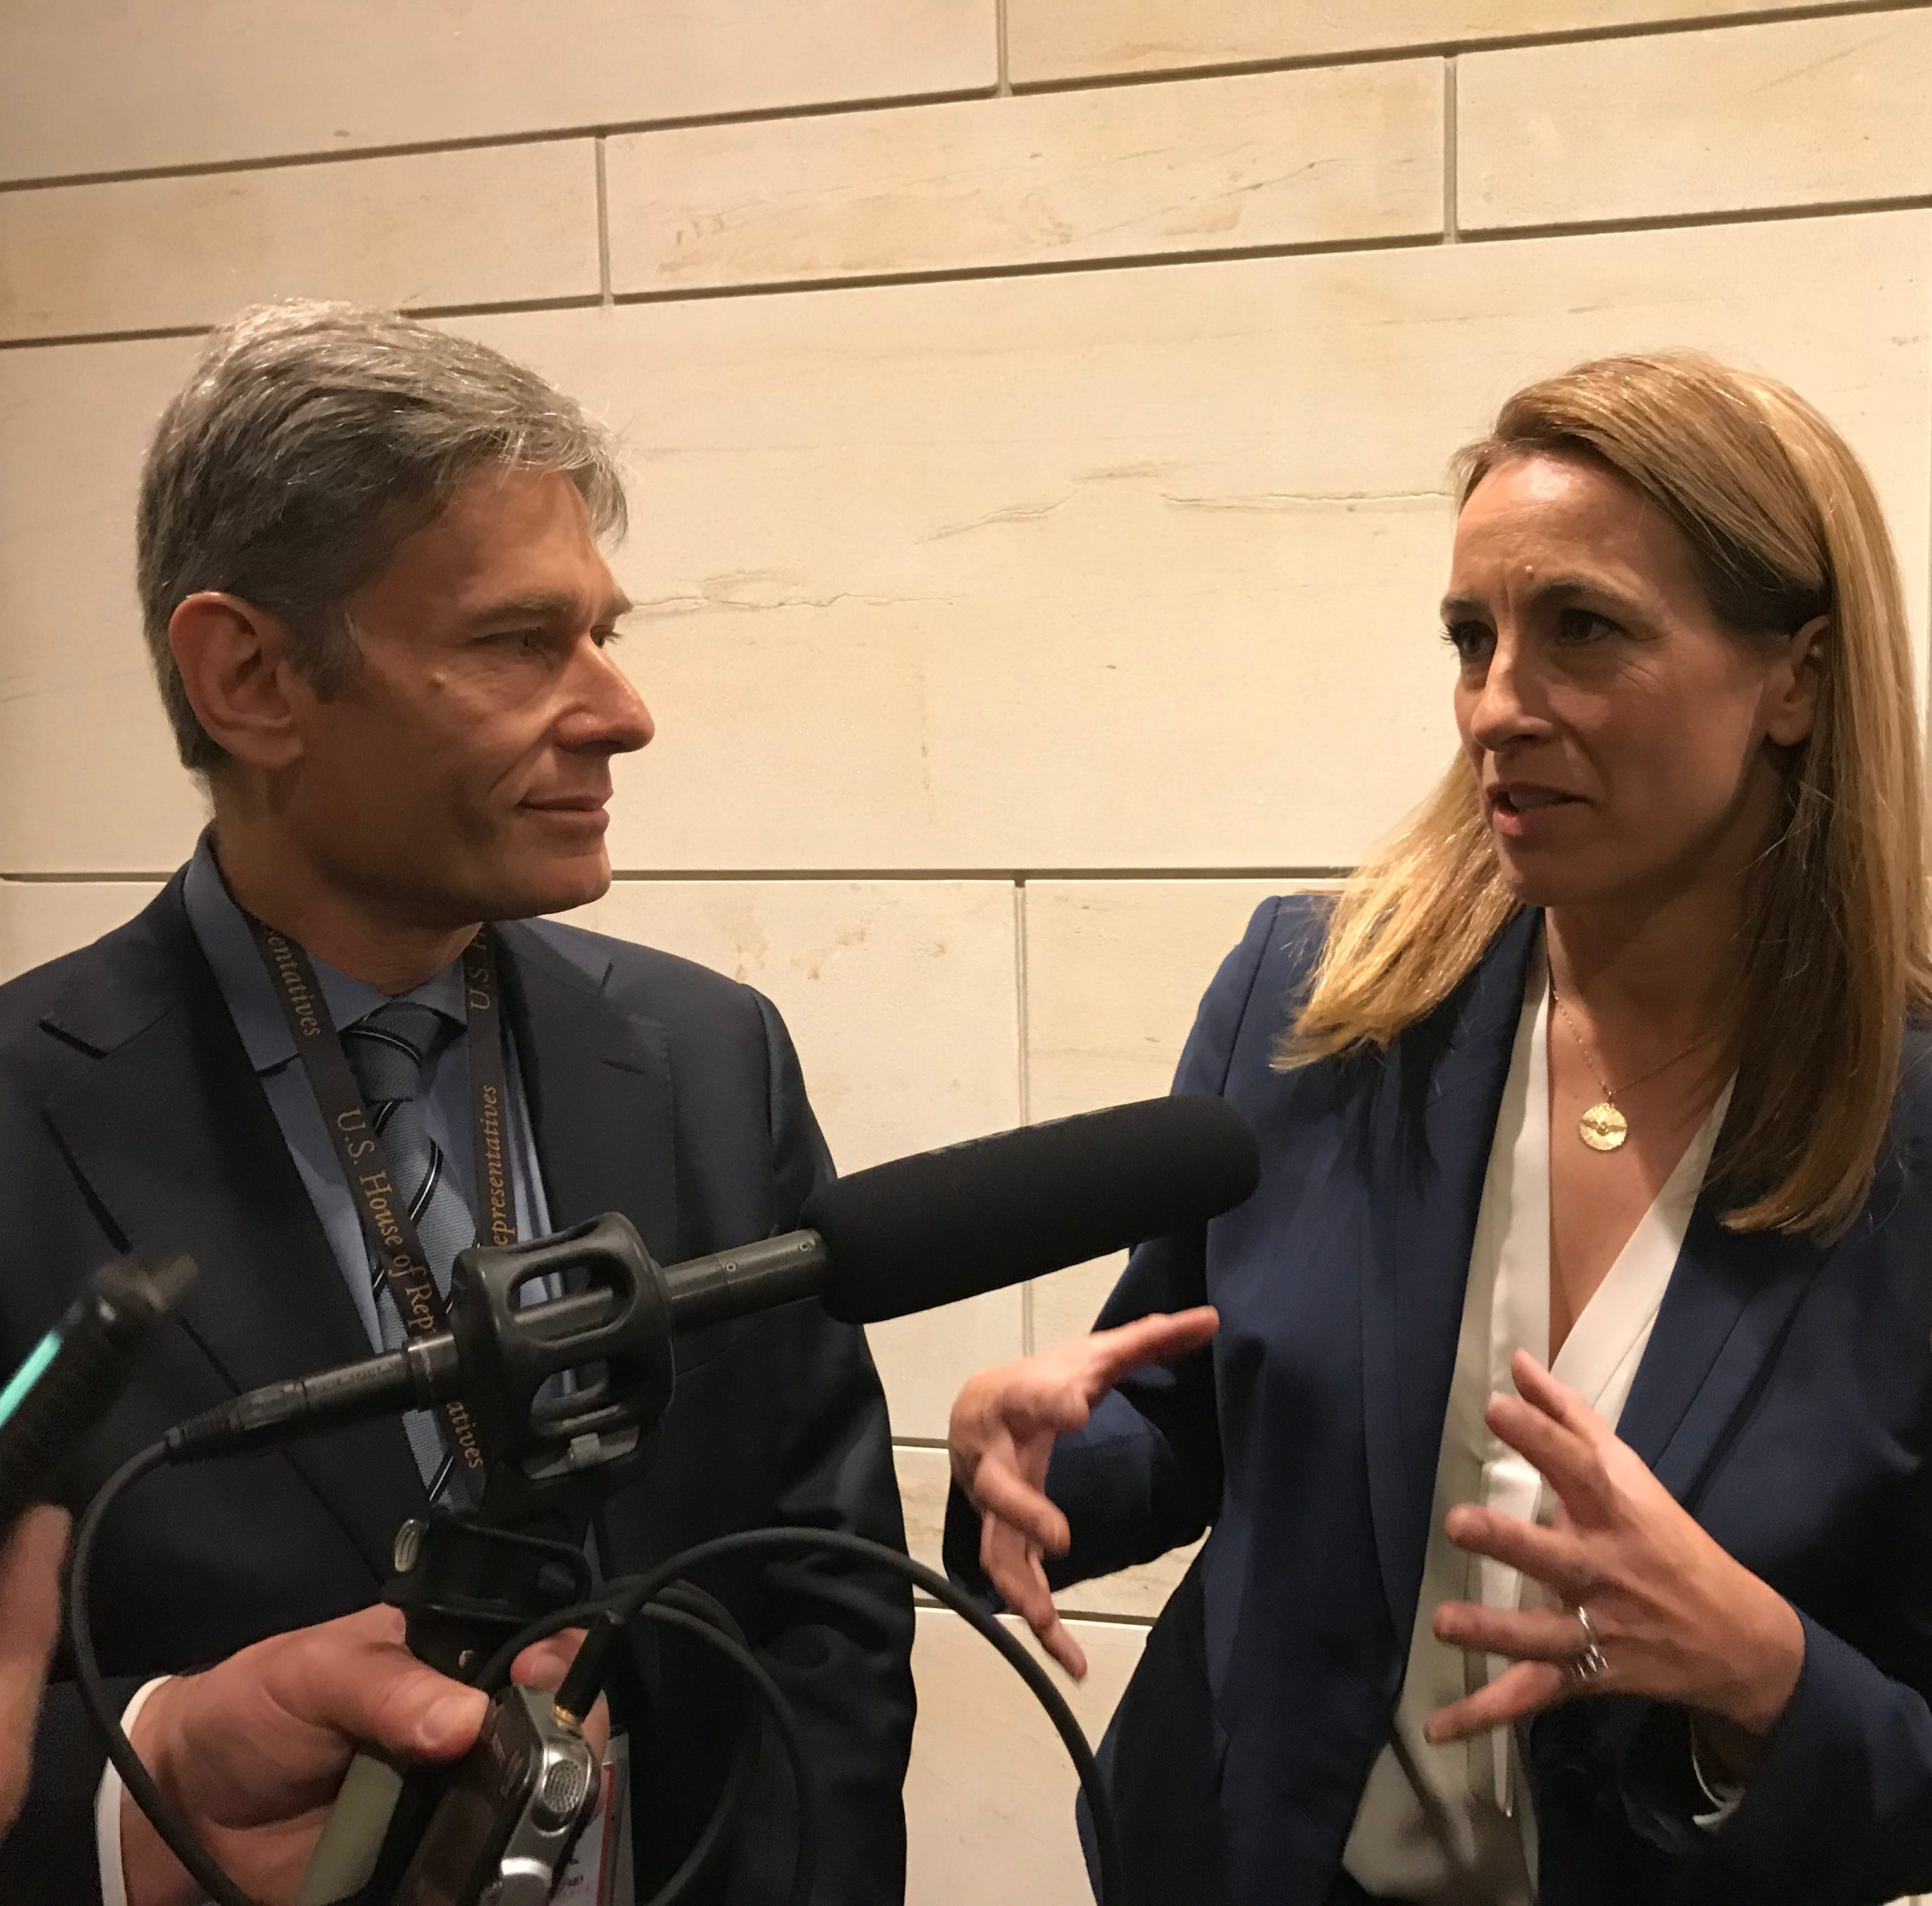 As Rep.elect Tom Malinowski looks on, Rep.-elect Mikie Sherrill discusses her first week of orientation as a new member of Congress on Nov. 15, 2018.